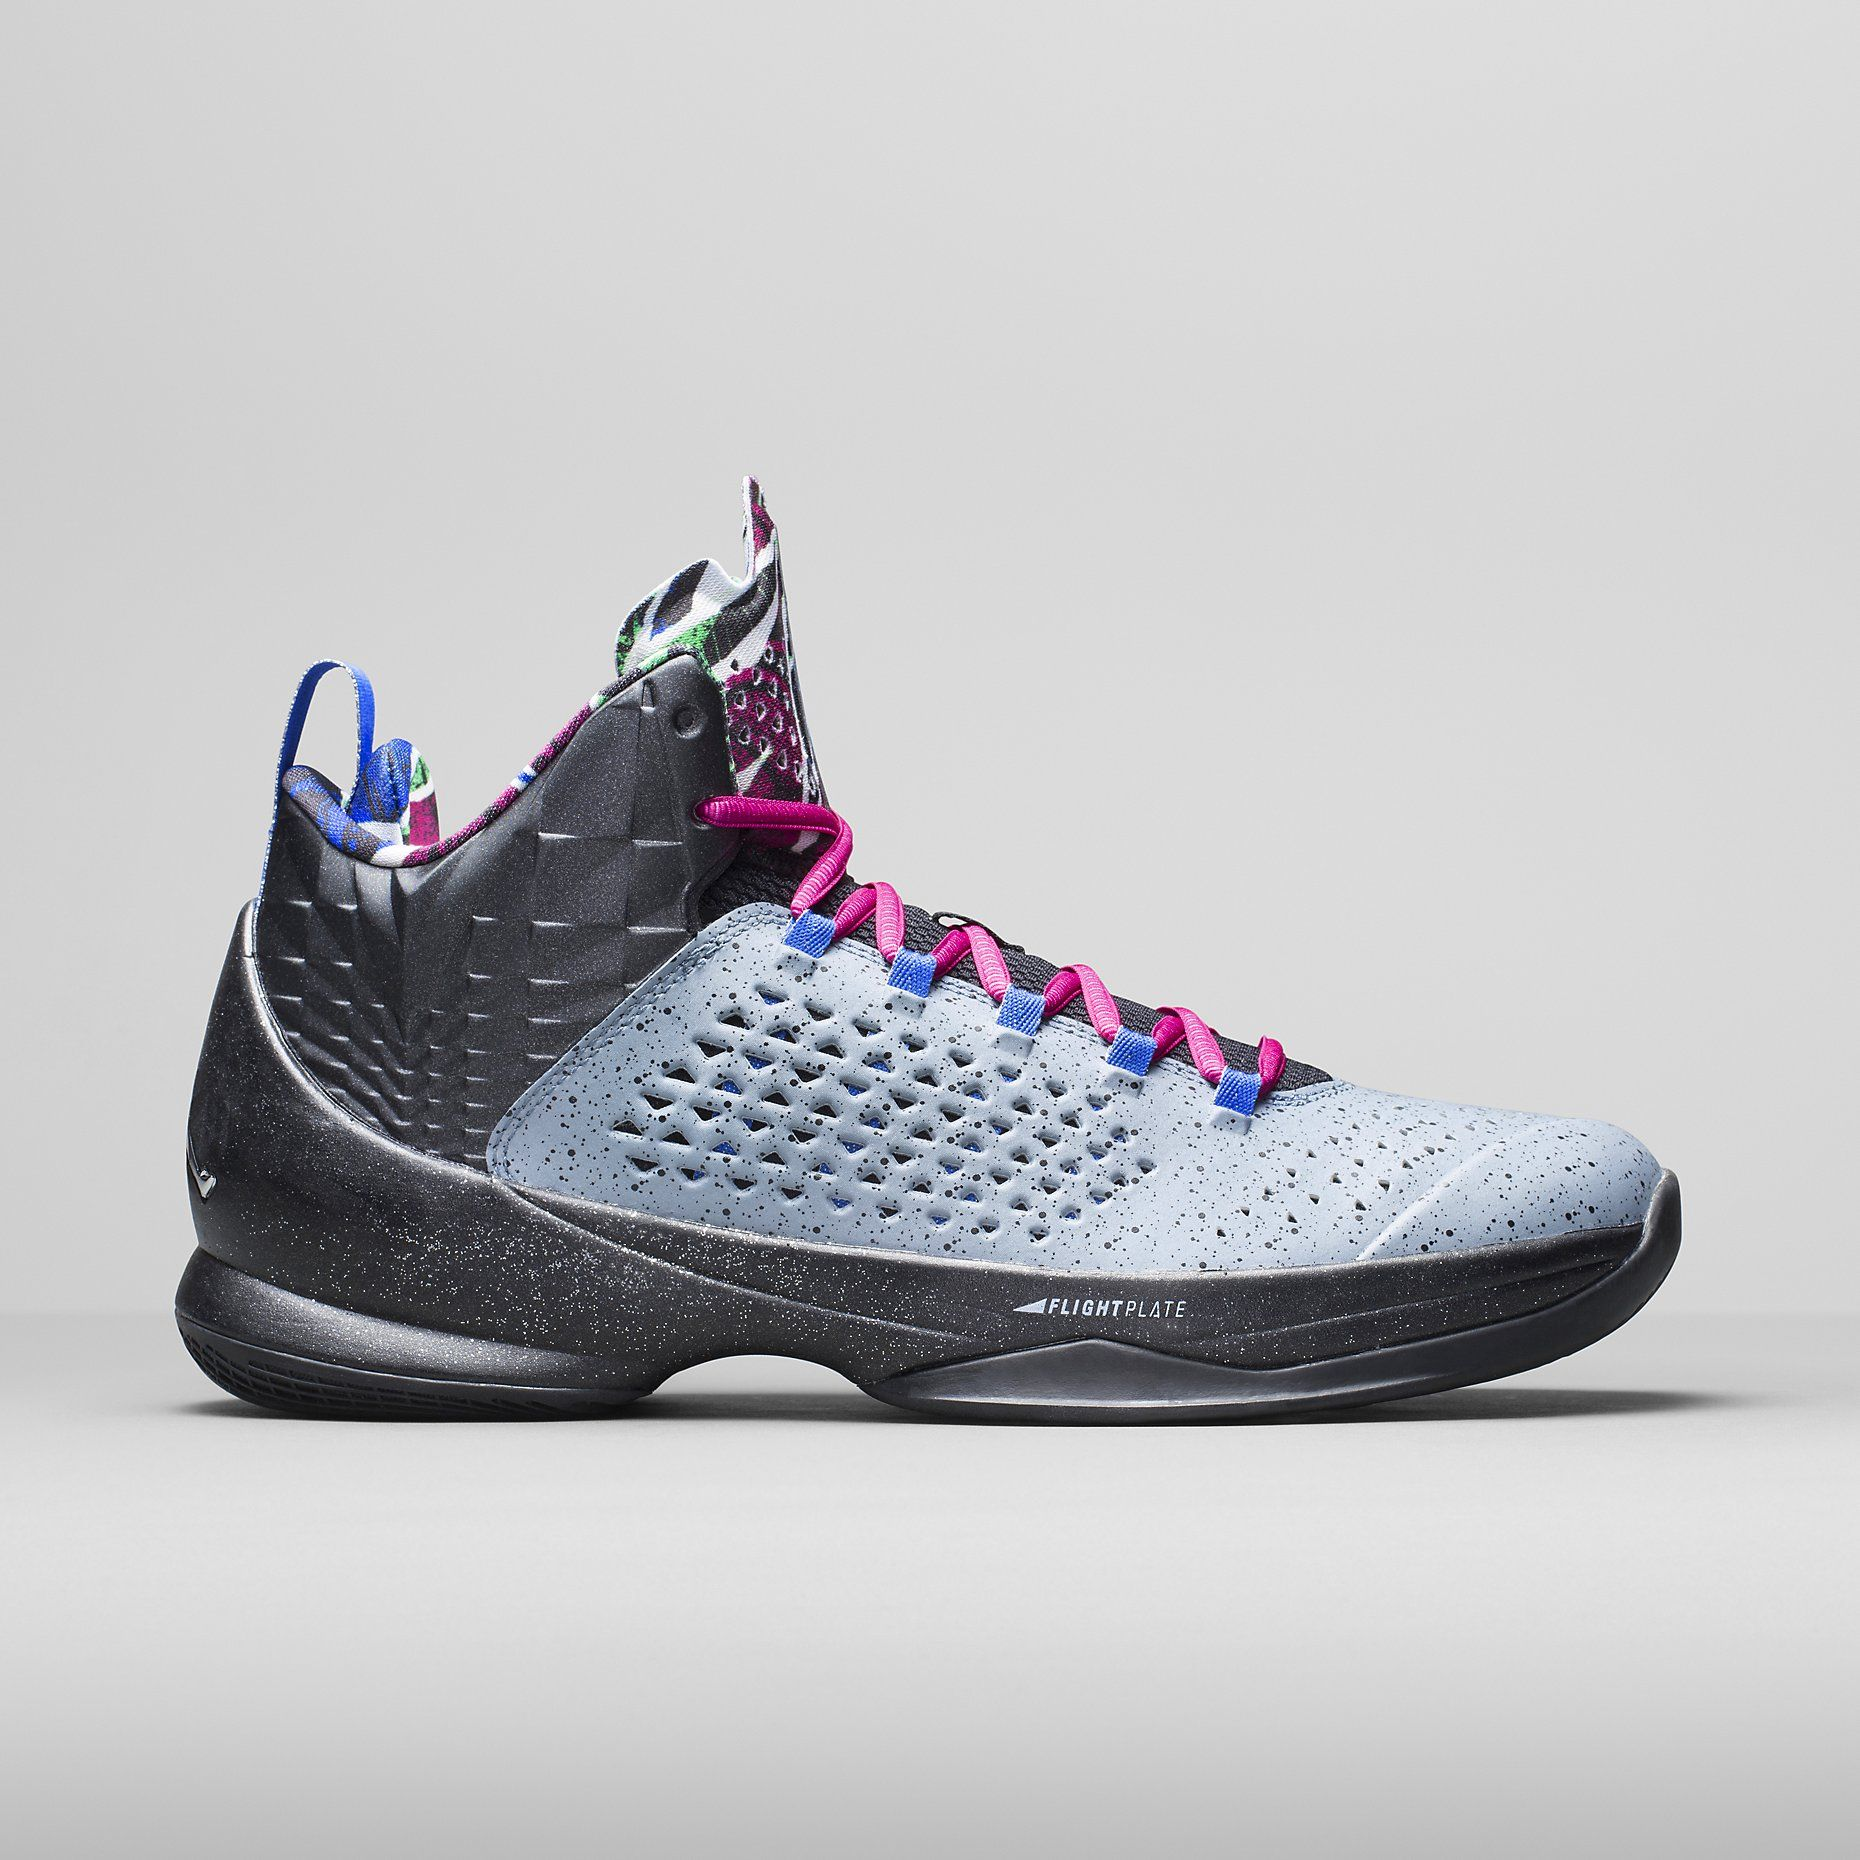 new arrival e0ecb 72d74 Jordan Melo 11 Men s Basketball Shoe. Nike Store